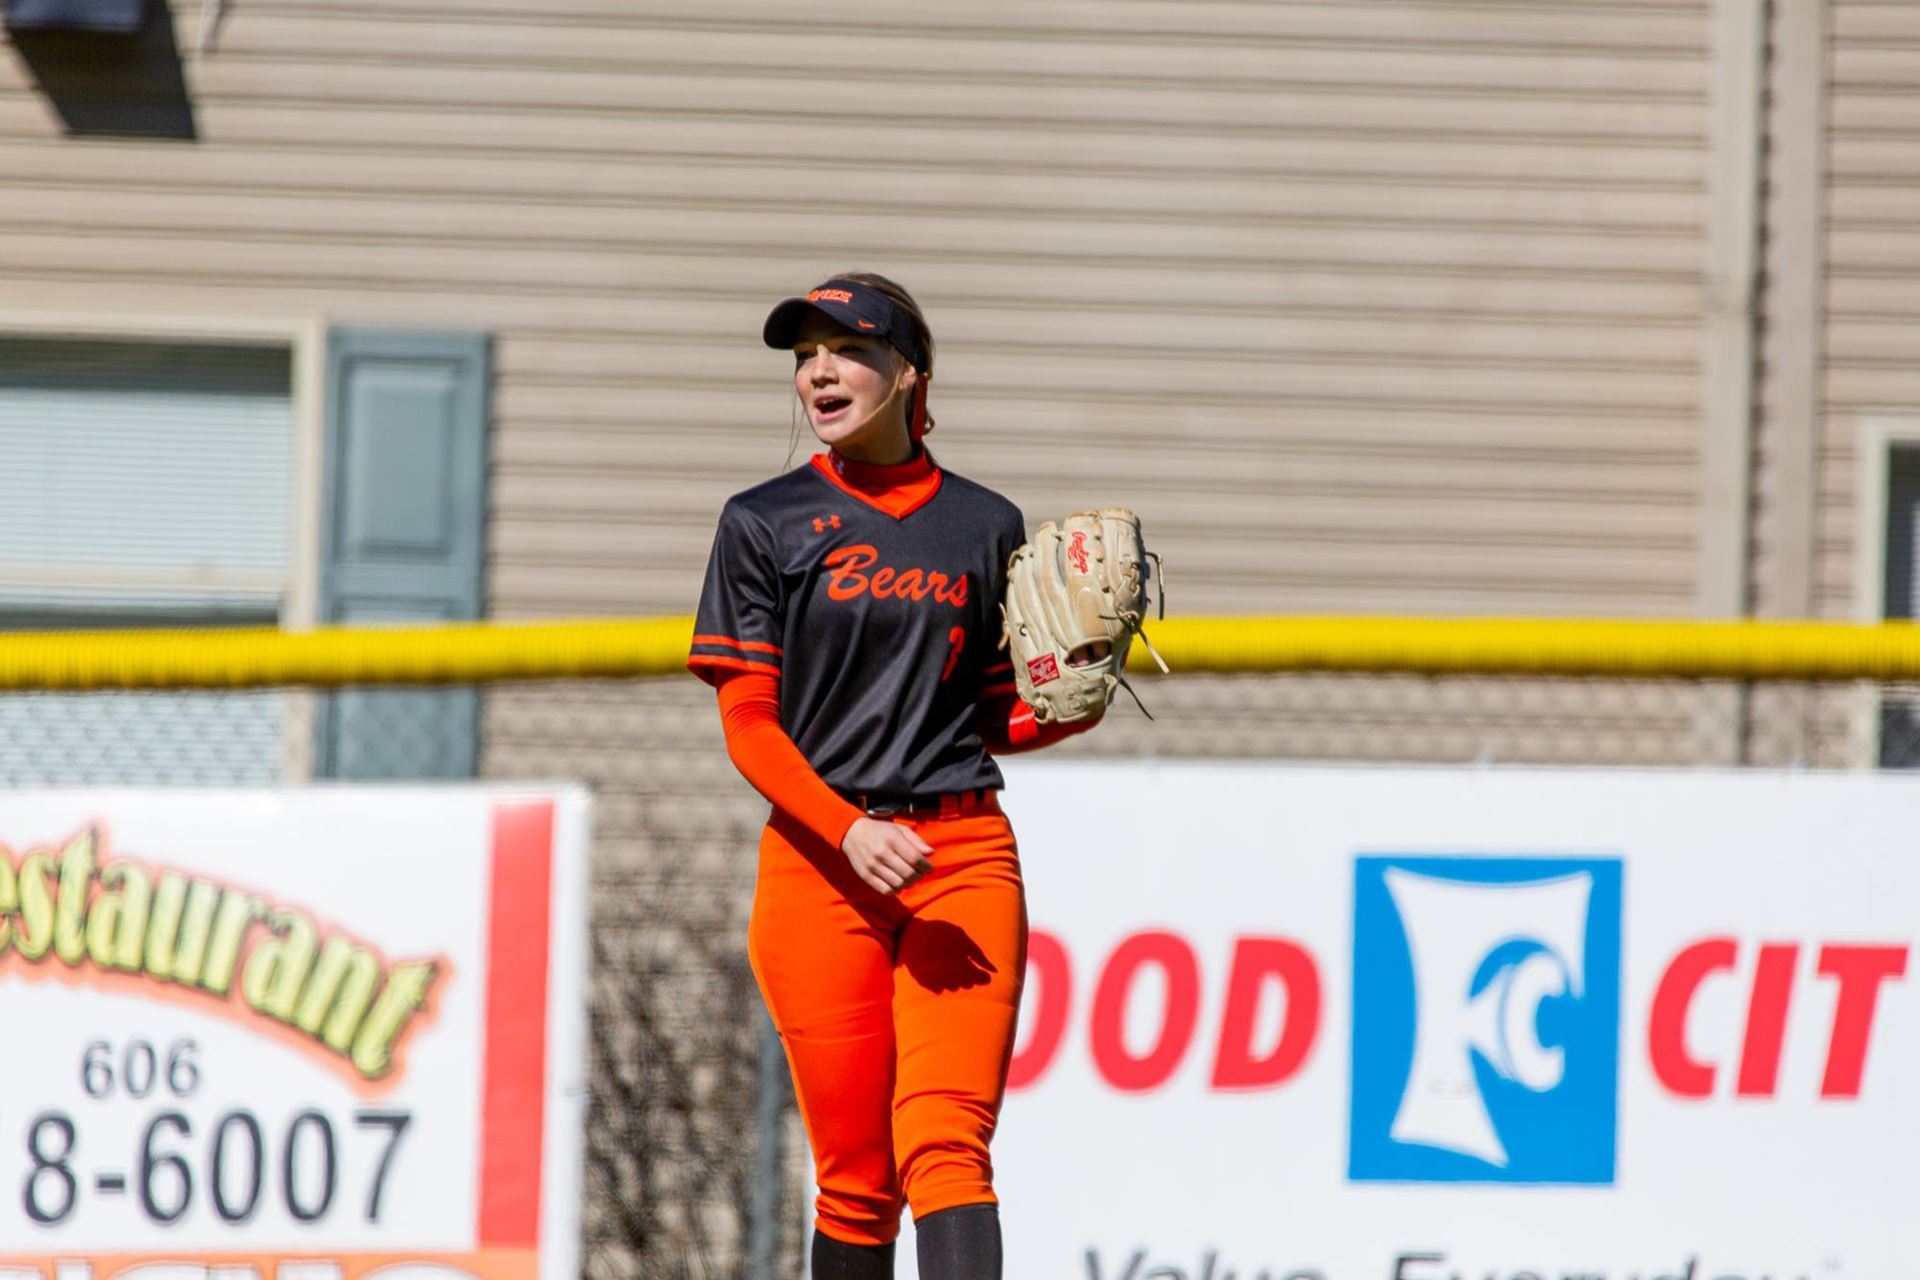 COLLEGE SOFTBALL: Beach life good for UPIKE Bears